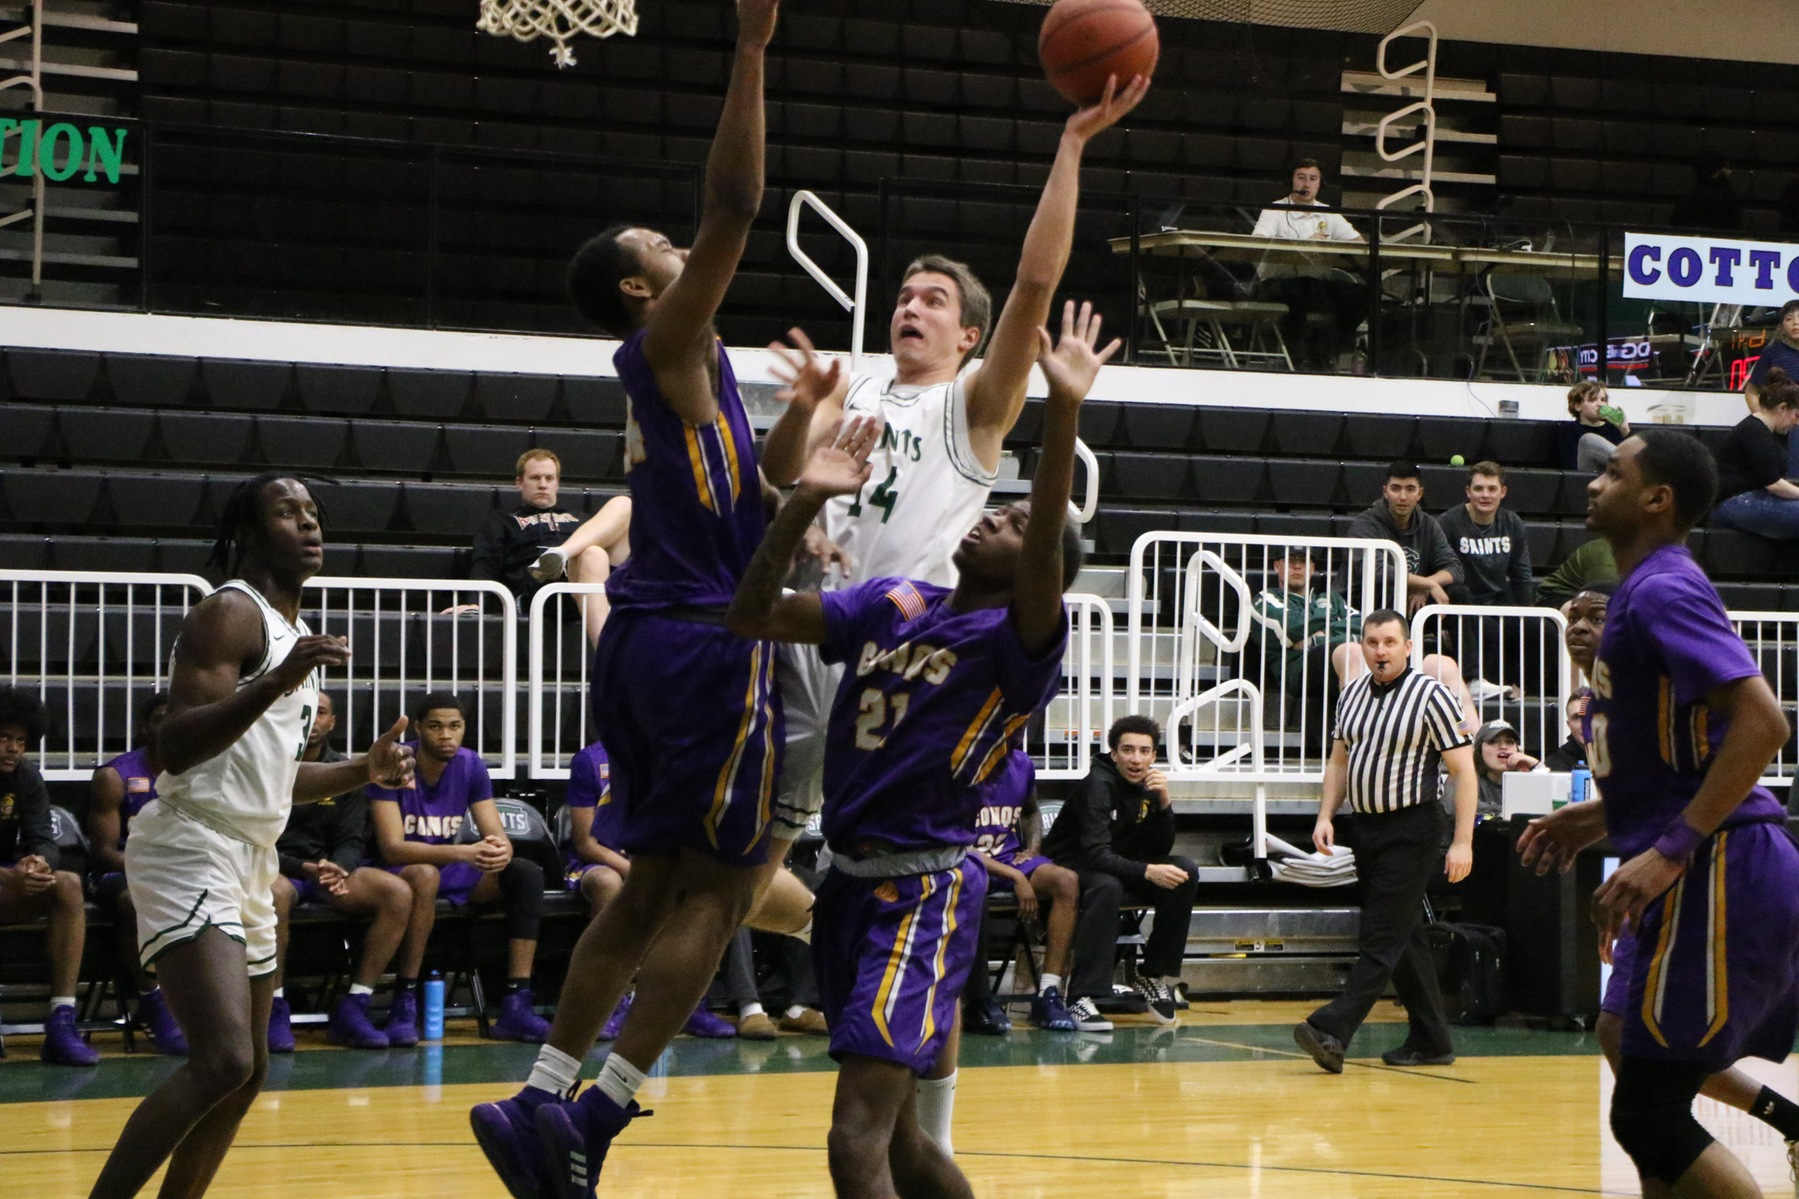 Saints Start Hot and Stay Hot in Win Over Conqs